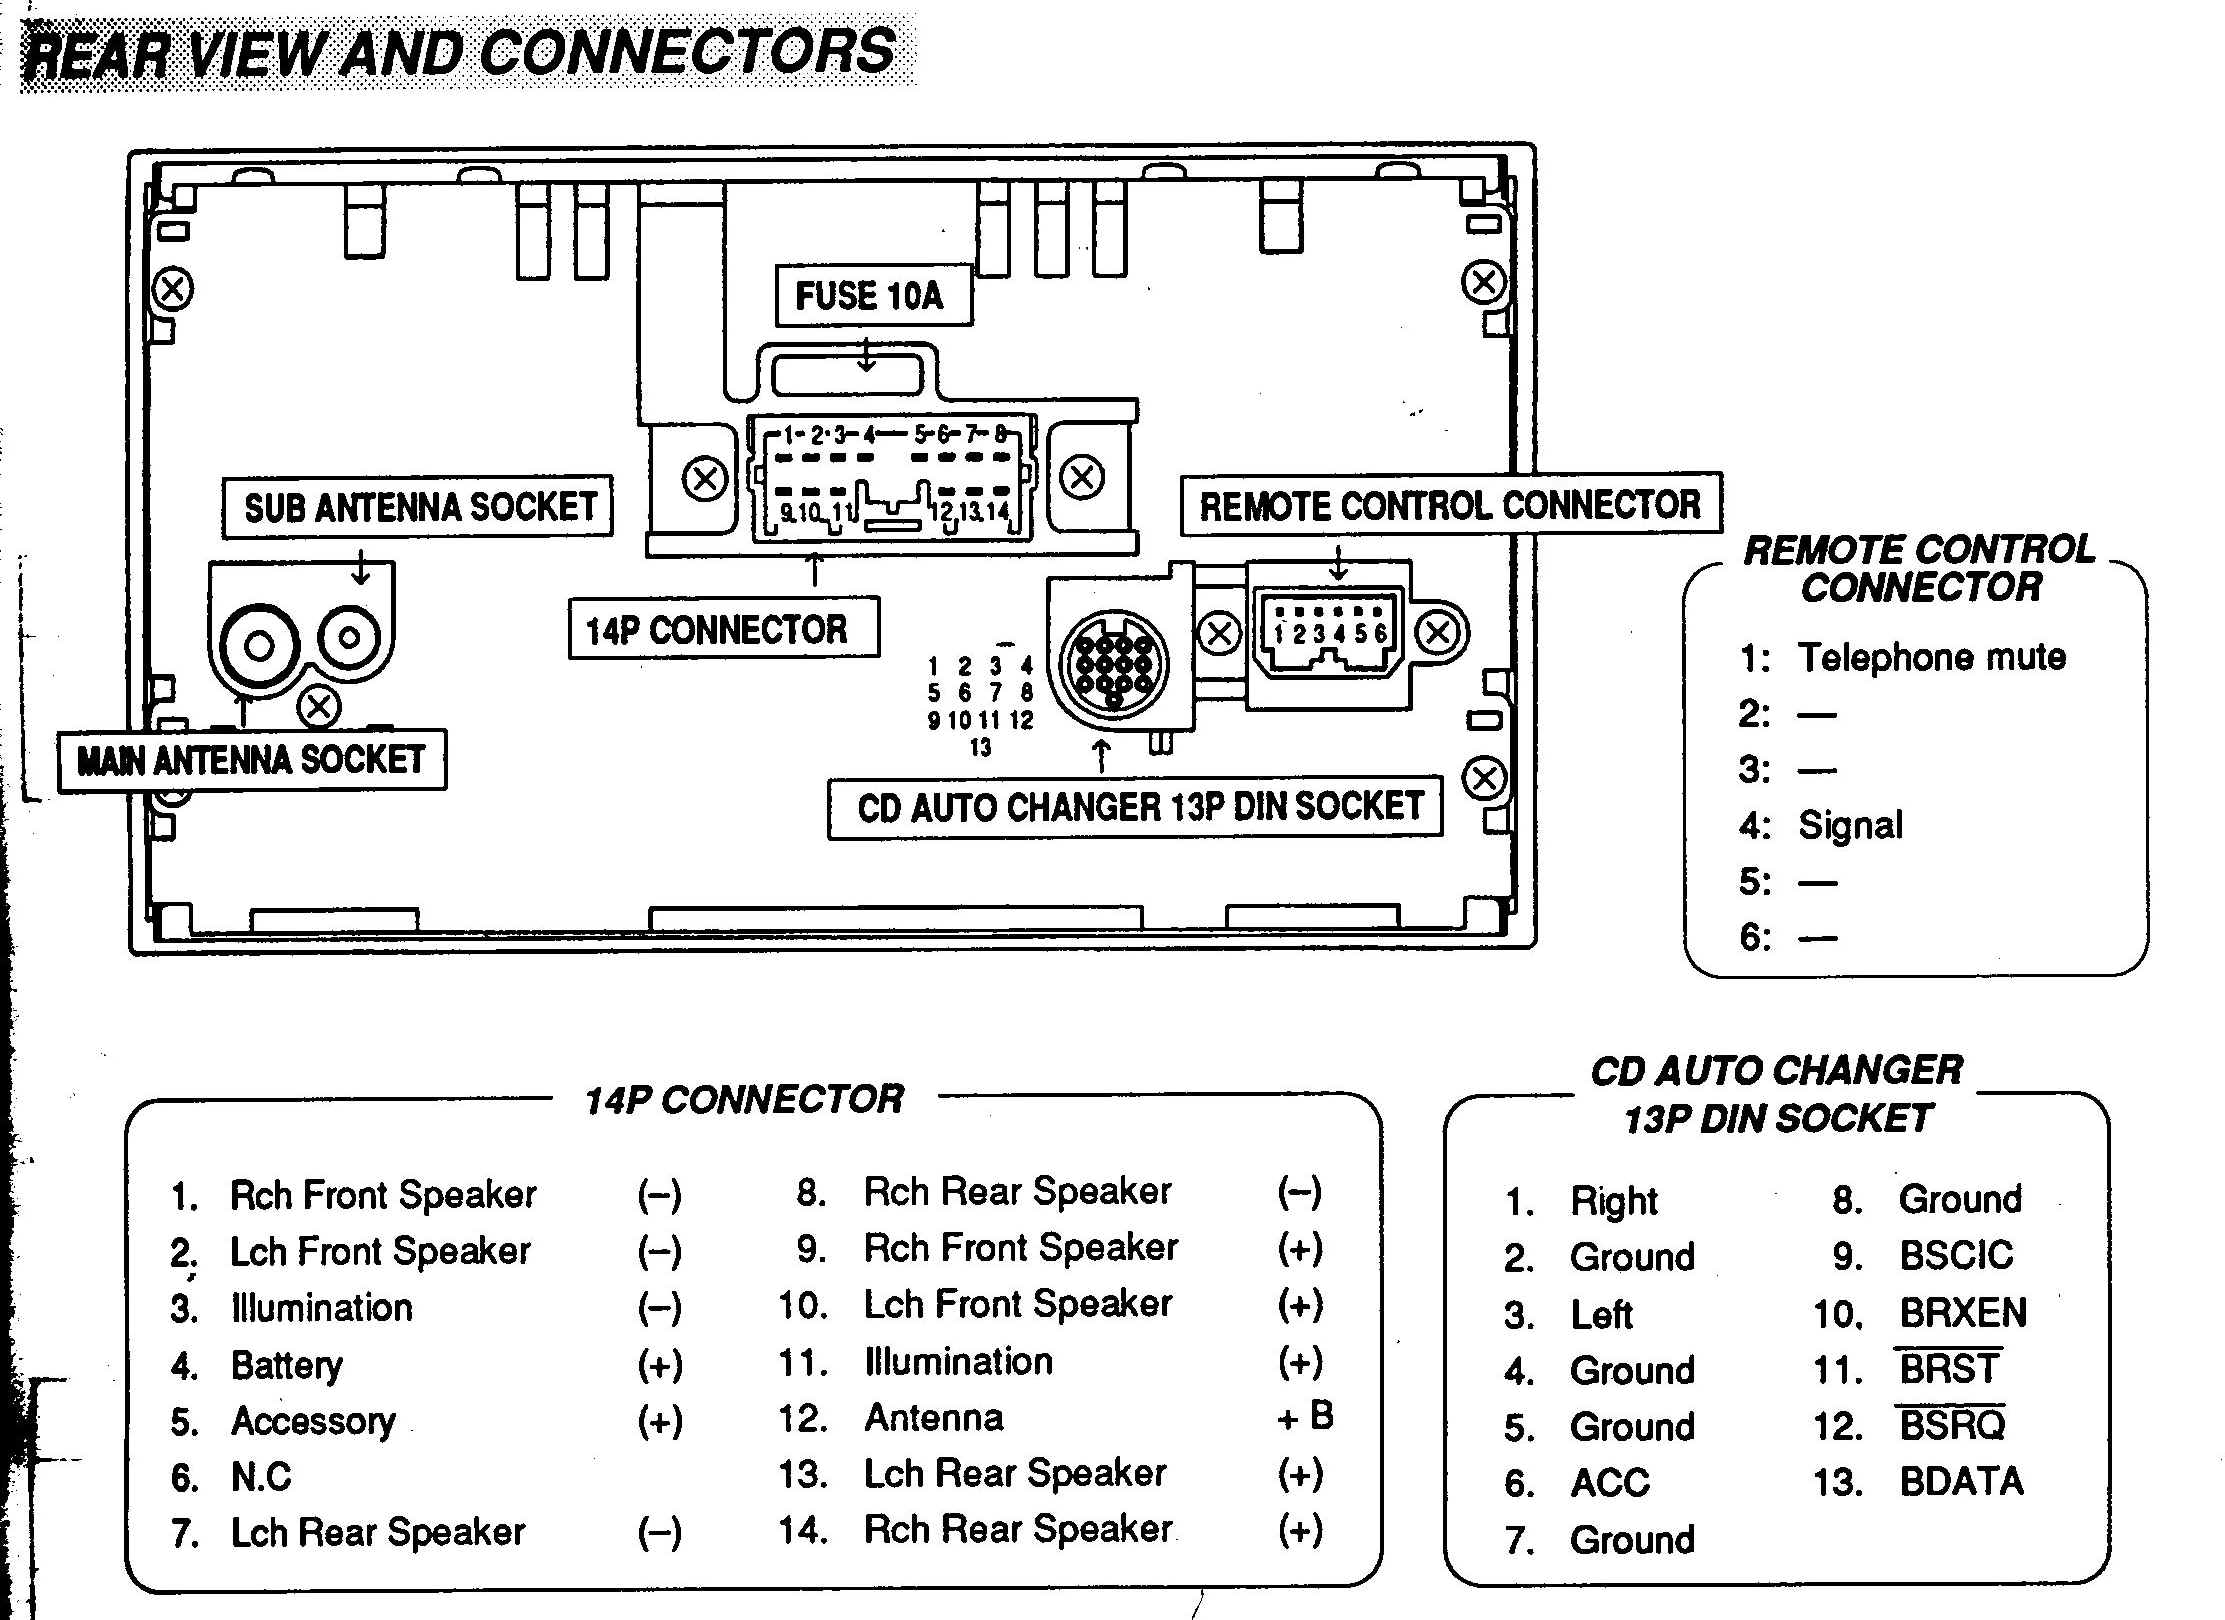 WireHarnessMit121003 car audio wire diagram codes mitsubishi factory car stereo audio wiring diagram at soozxer.org